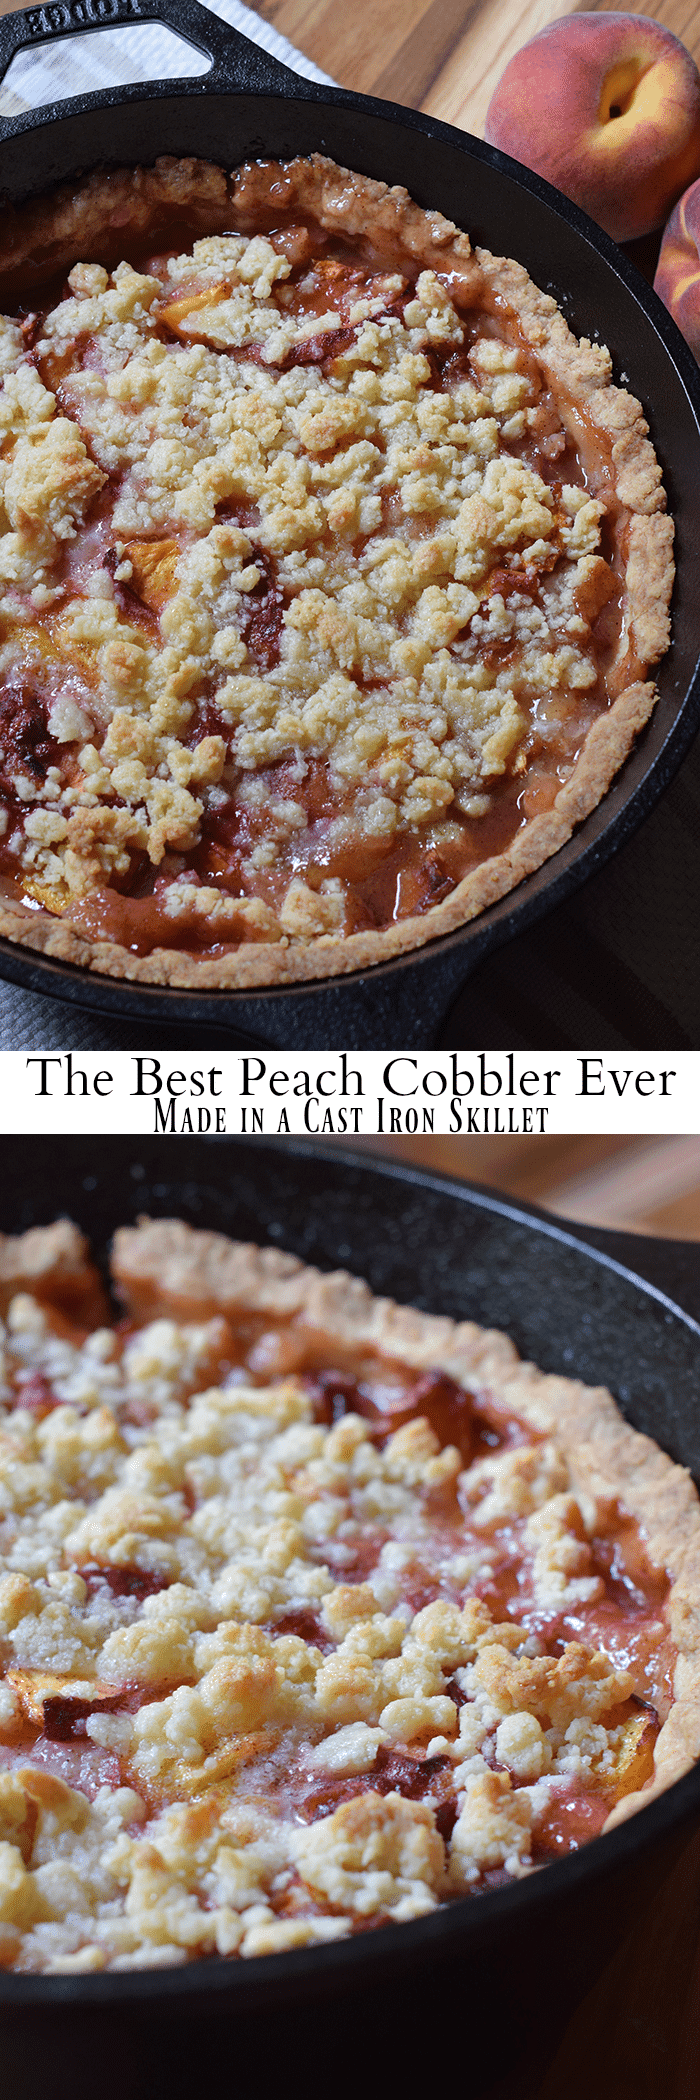 The Best Peach Cobbler Ever Made In A Cast Iron Skillet